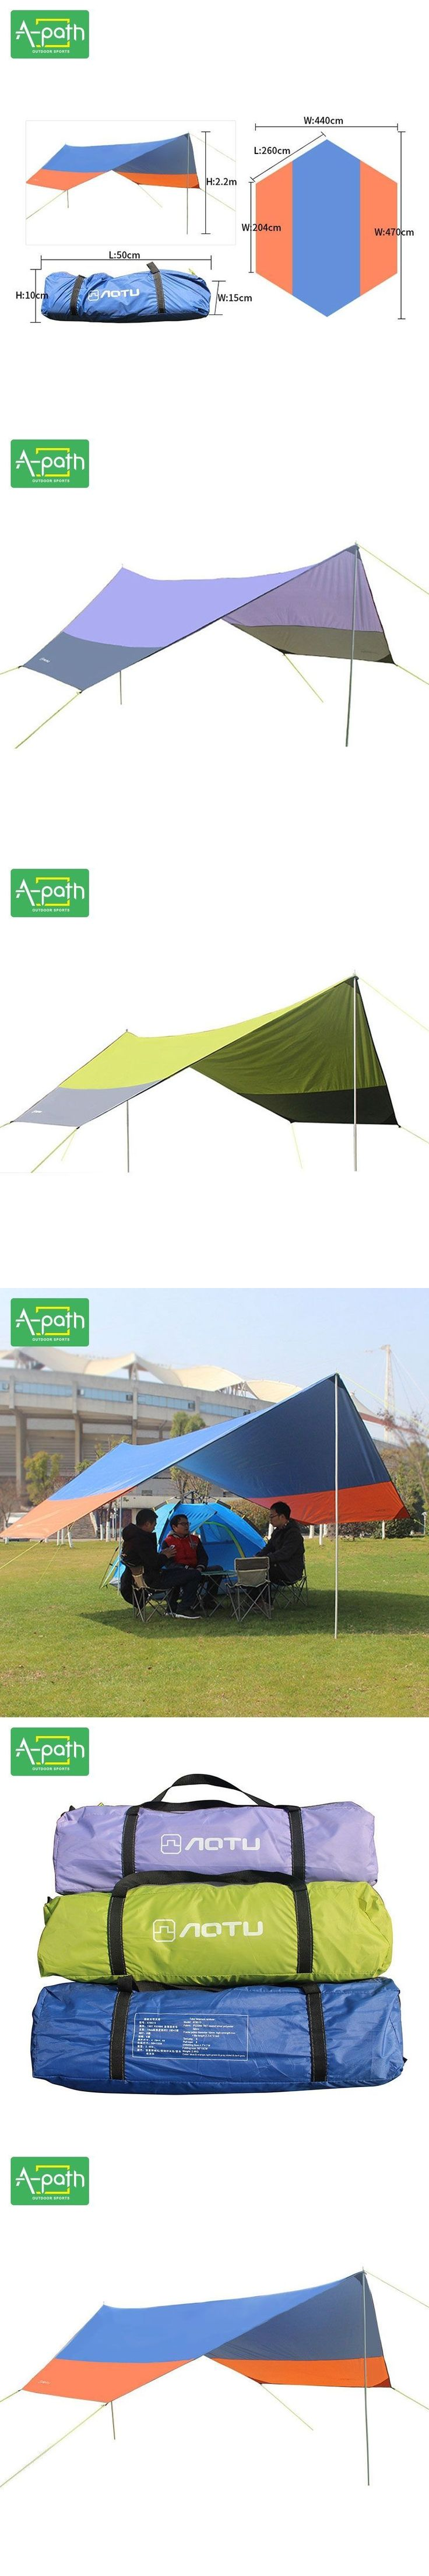 8 Person Large Outdoor Camping Sun Shelter Tarp Awning Beach Fishing Umbrella Party Garden Folding Car Tent Arbor Snowglobe #FishingUmbrella